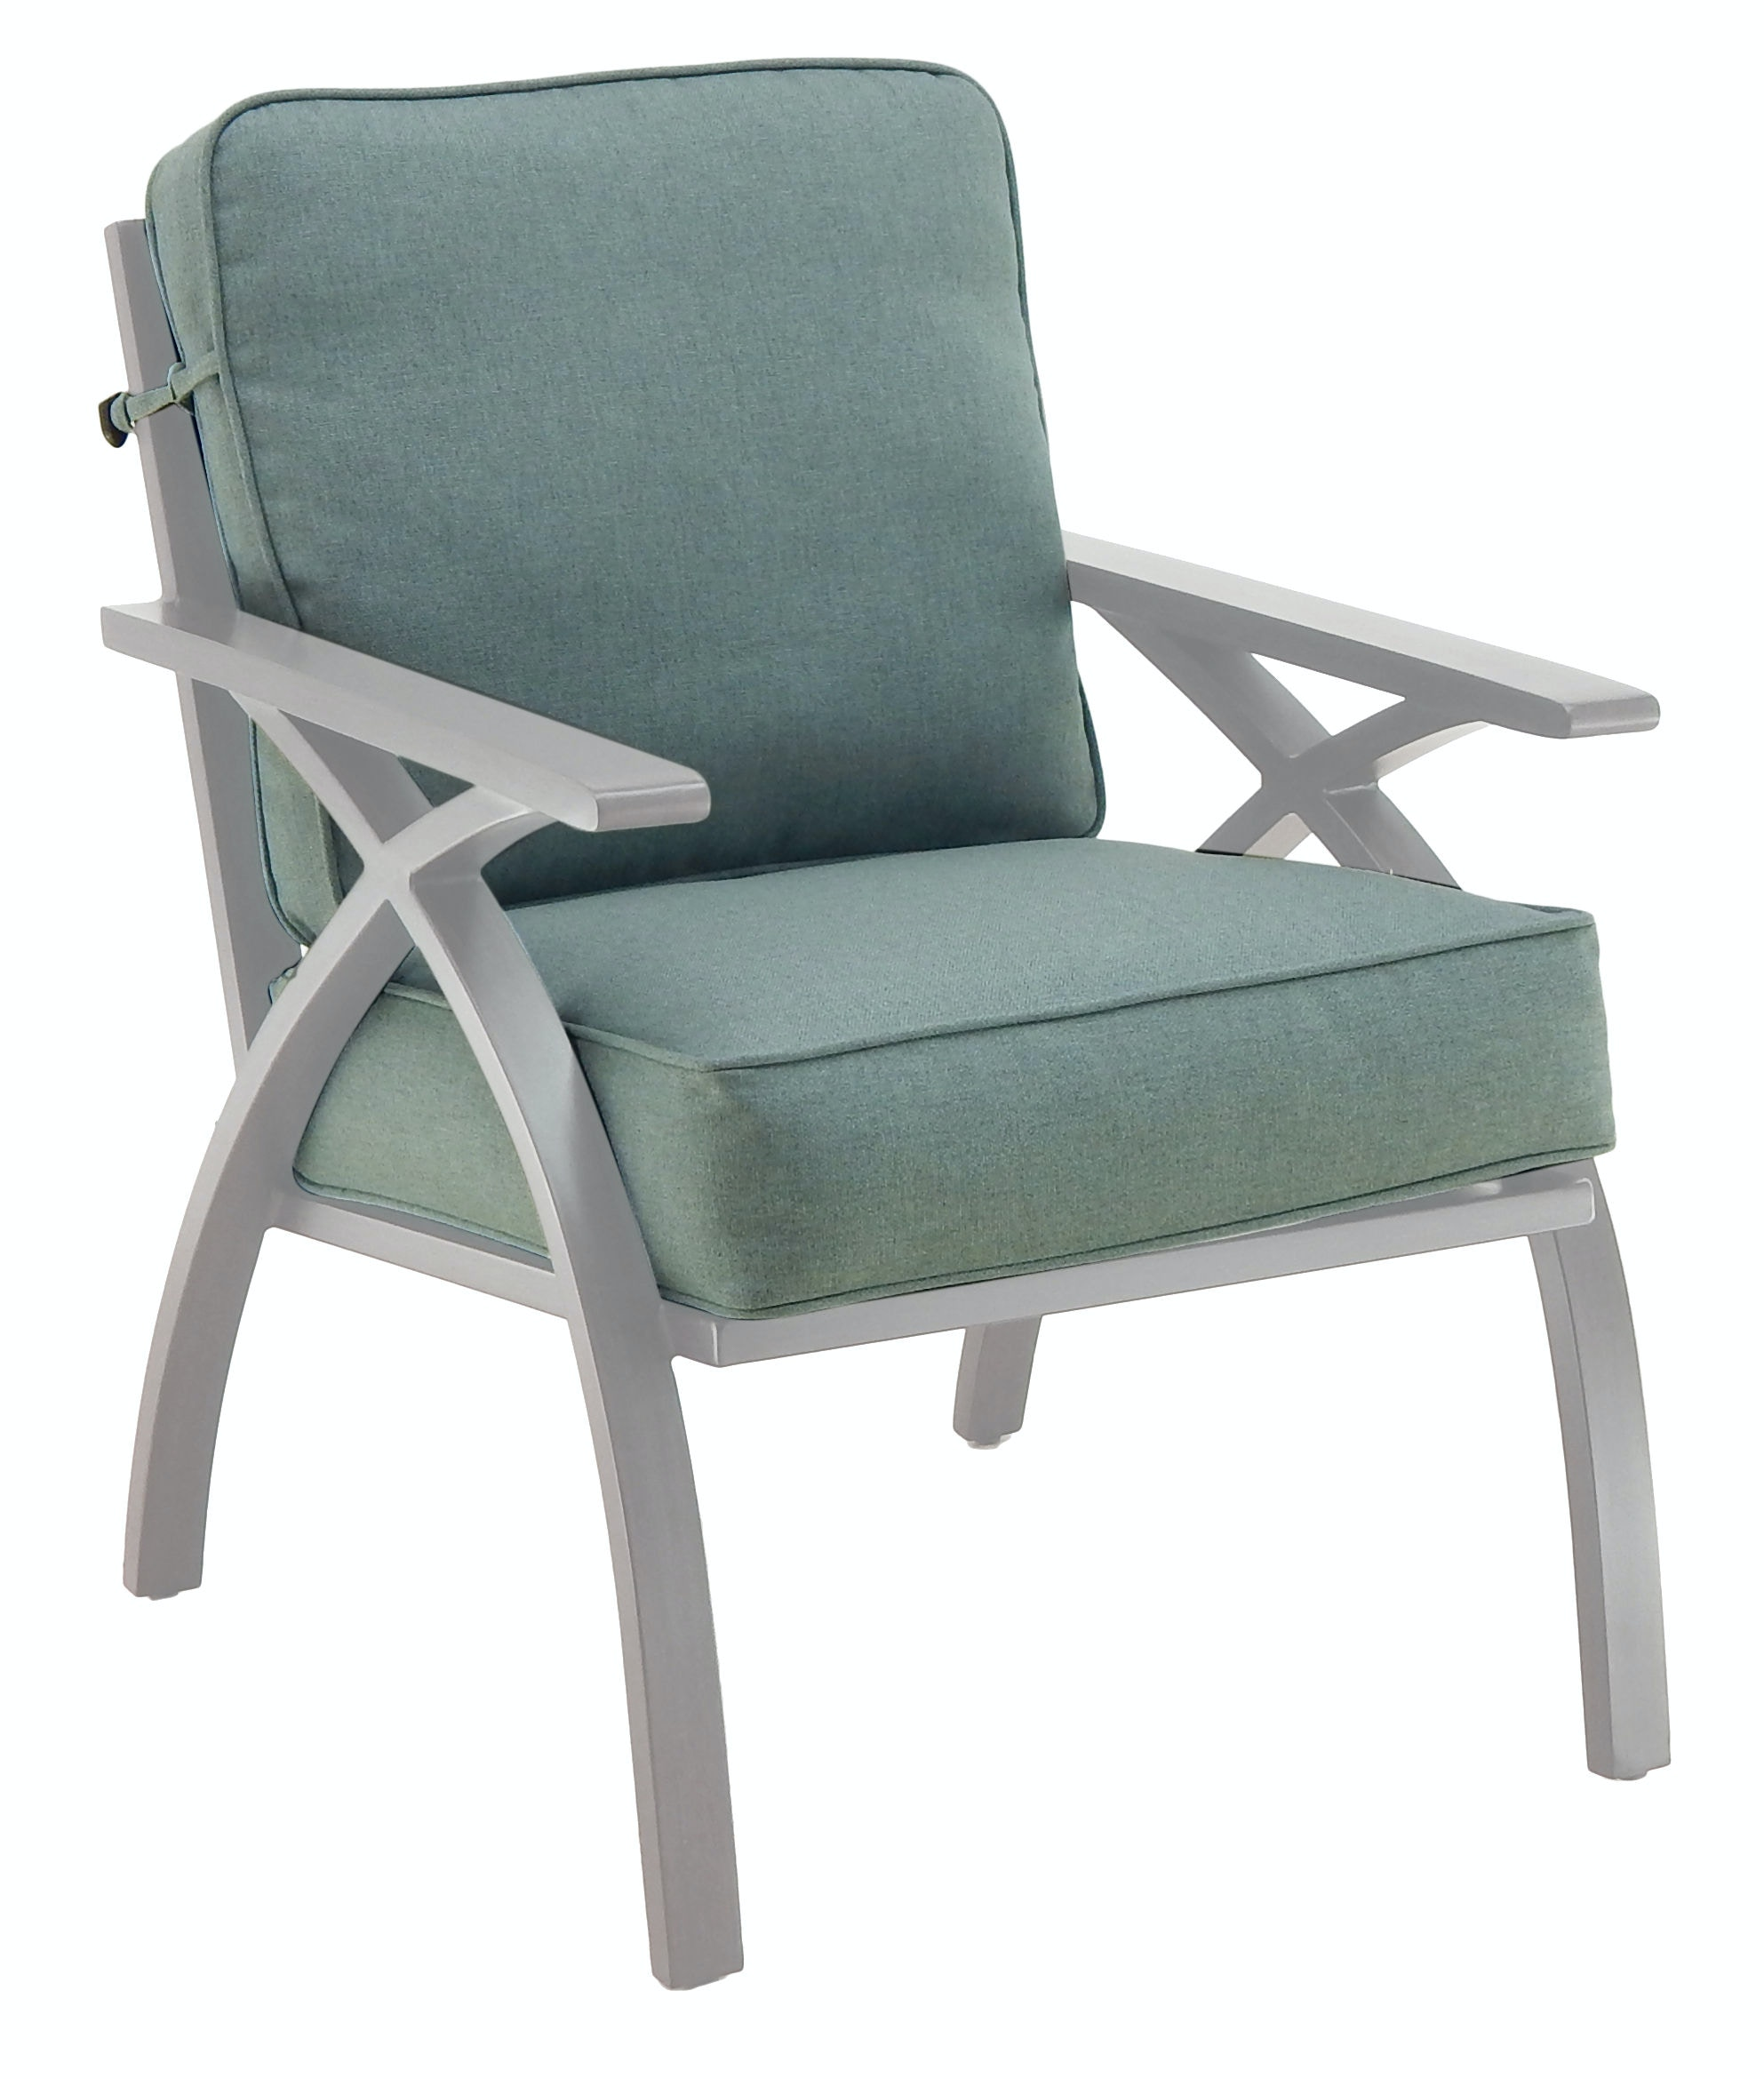 Outdoor/Patio Cushioned Dining Chair By Castelle 2706BT   Patios USA   USA  Questions? Call 888.643.6003